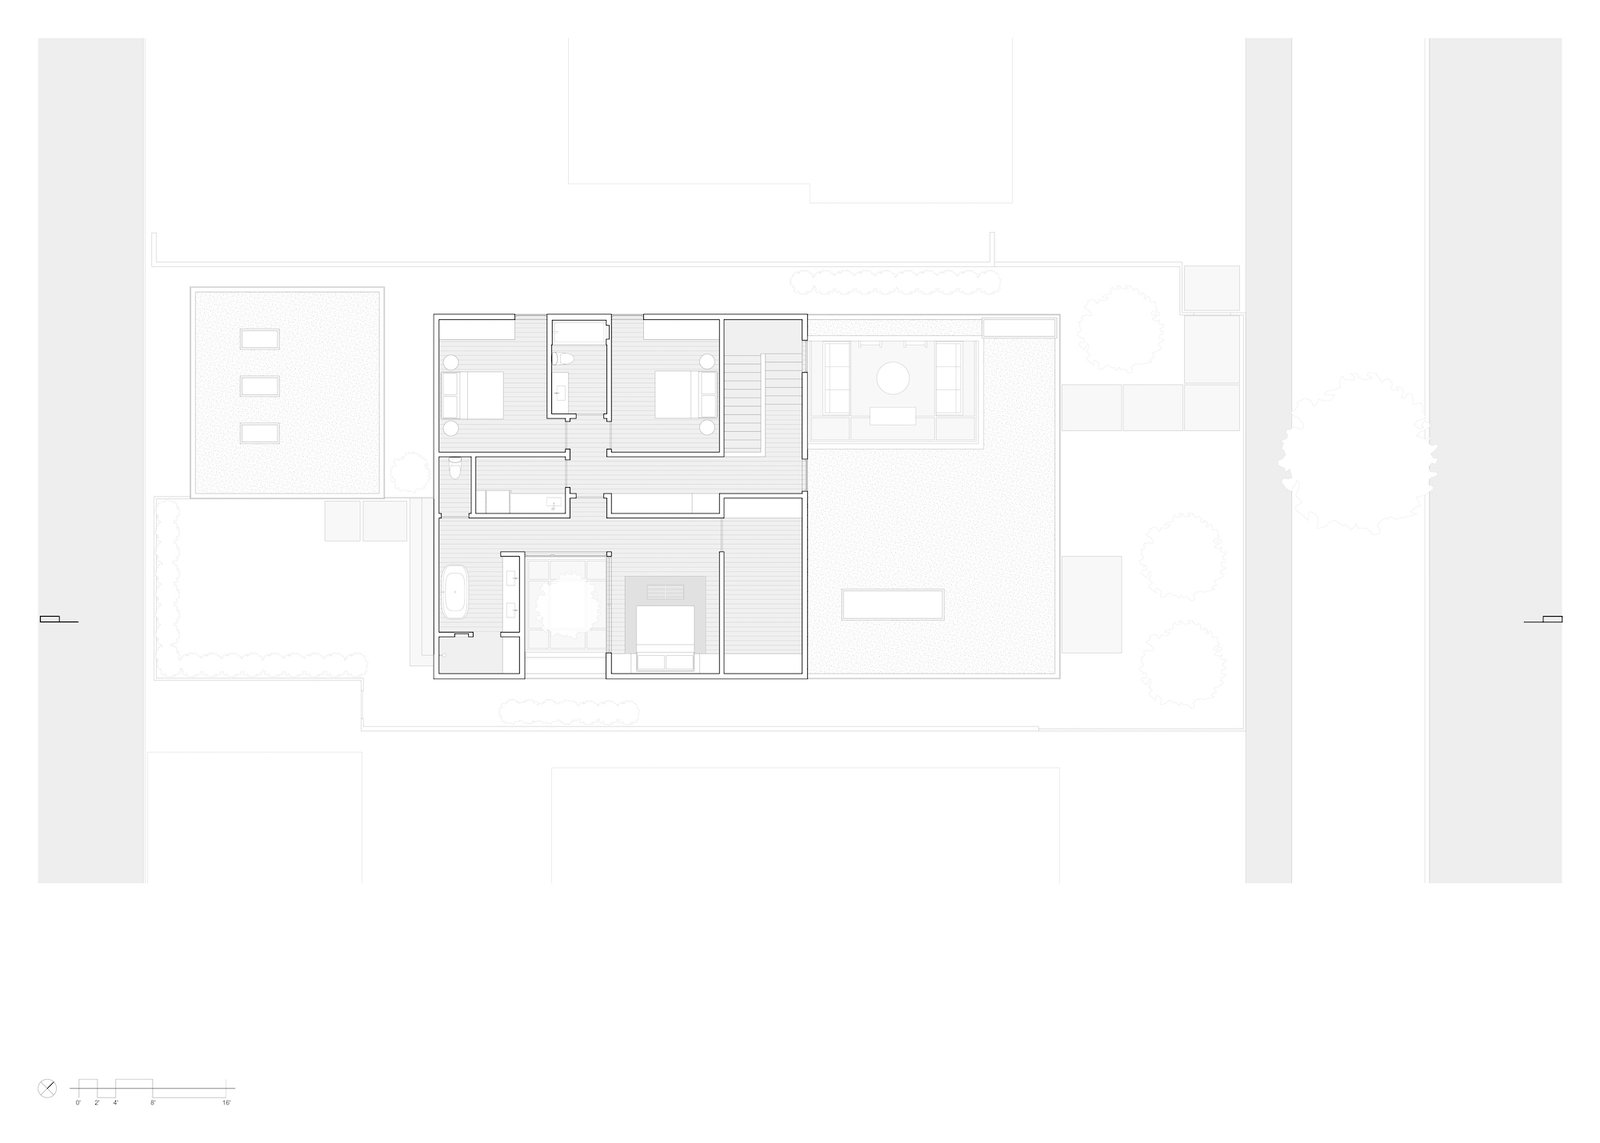 Level-two floor plan of Culver City Case Study House by Woods + Dangaran